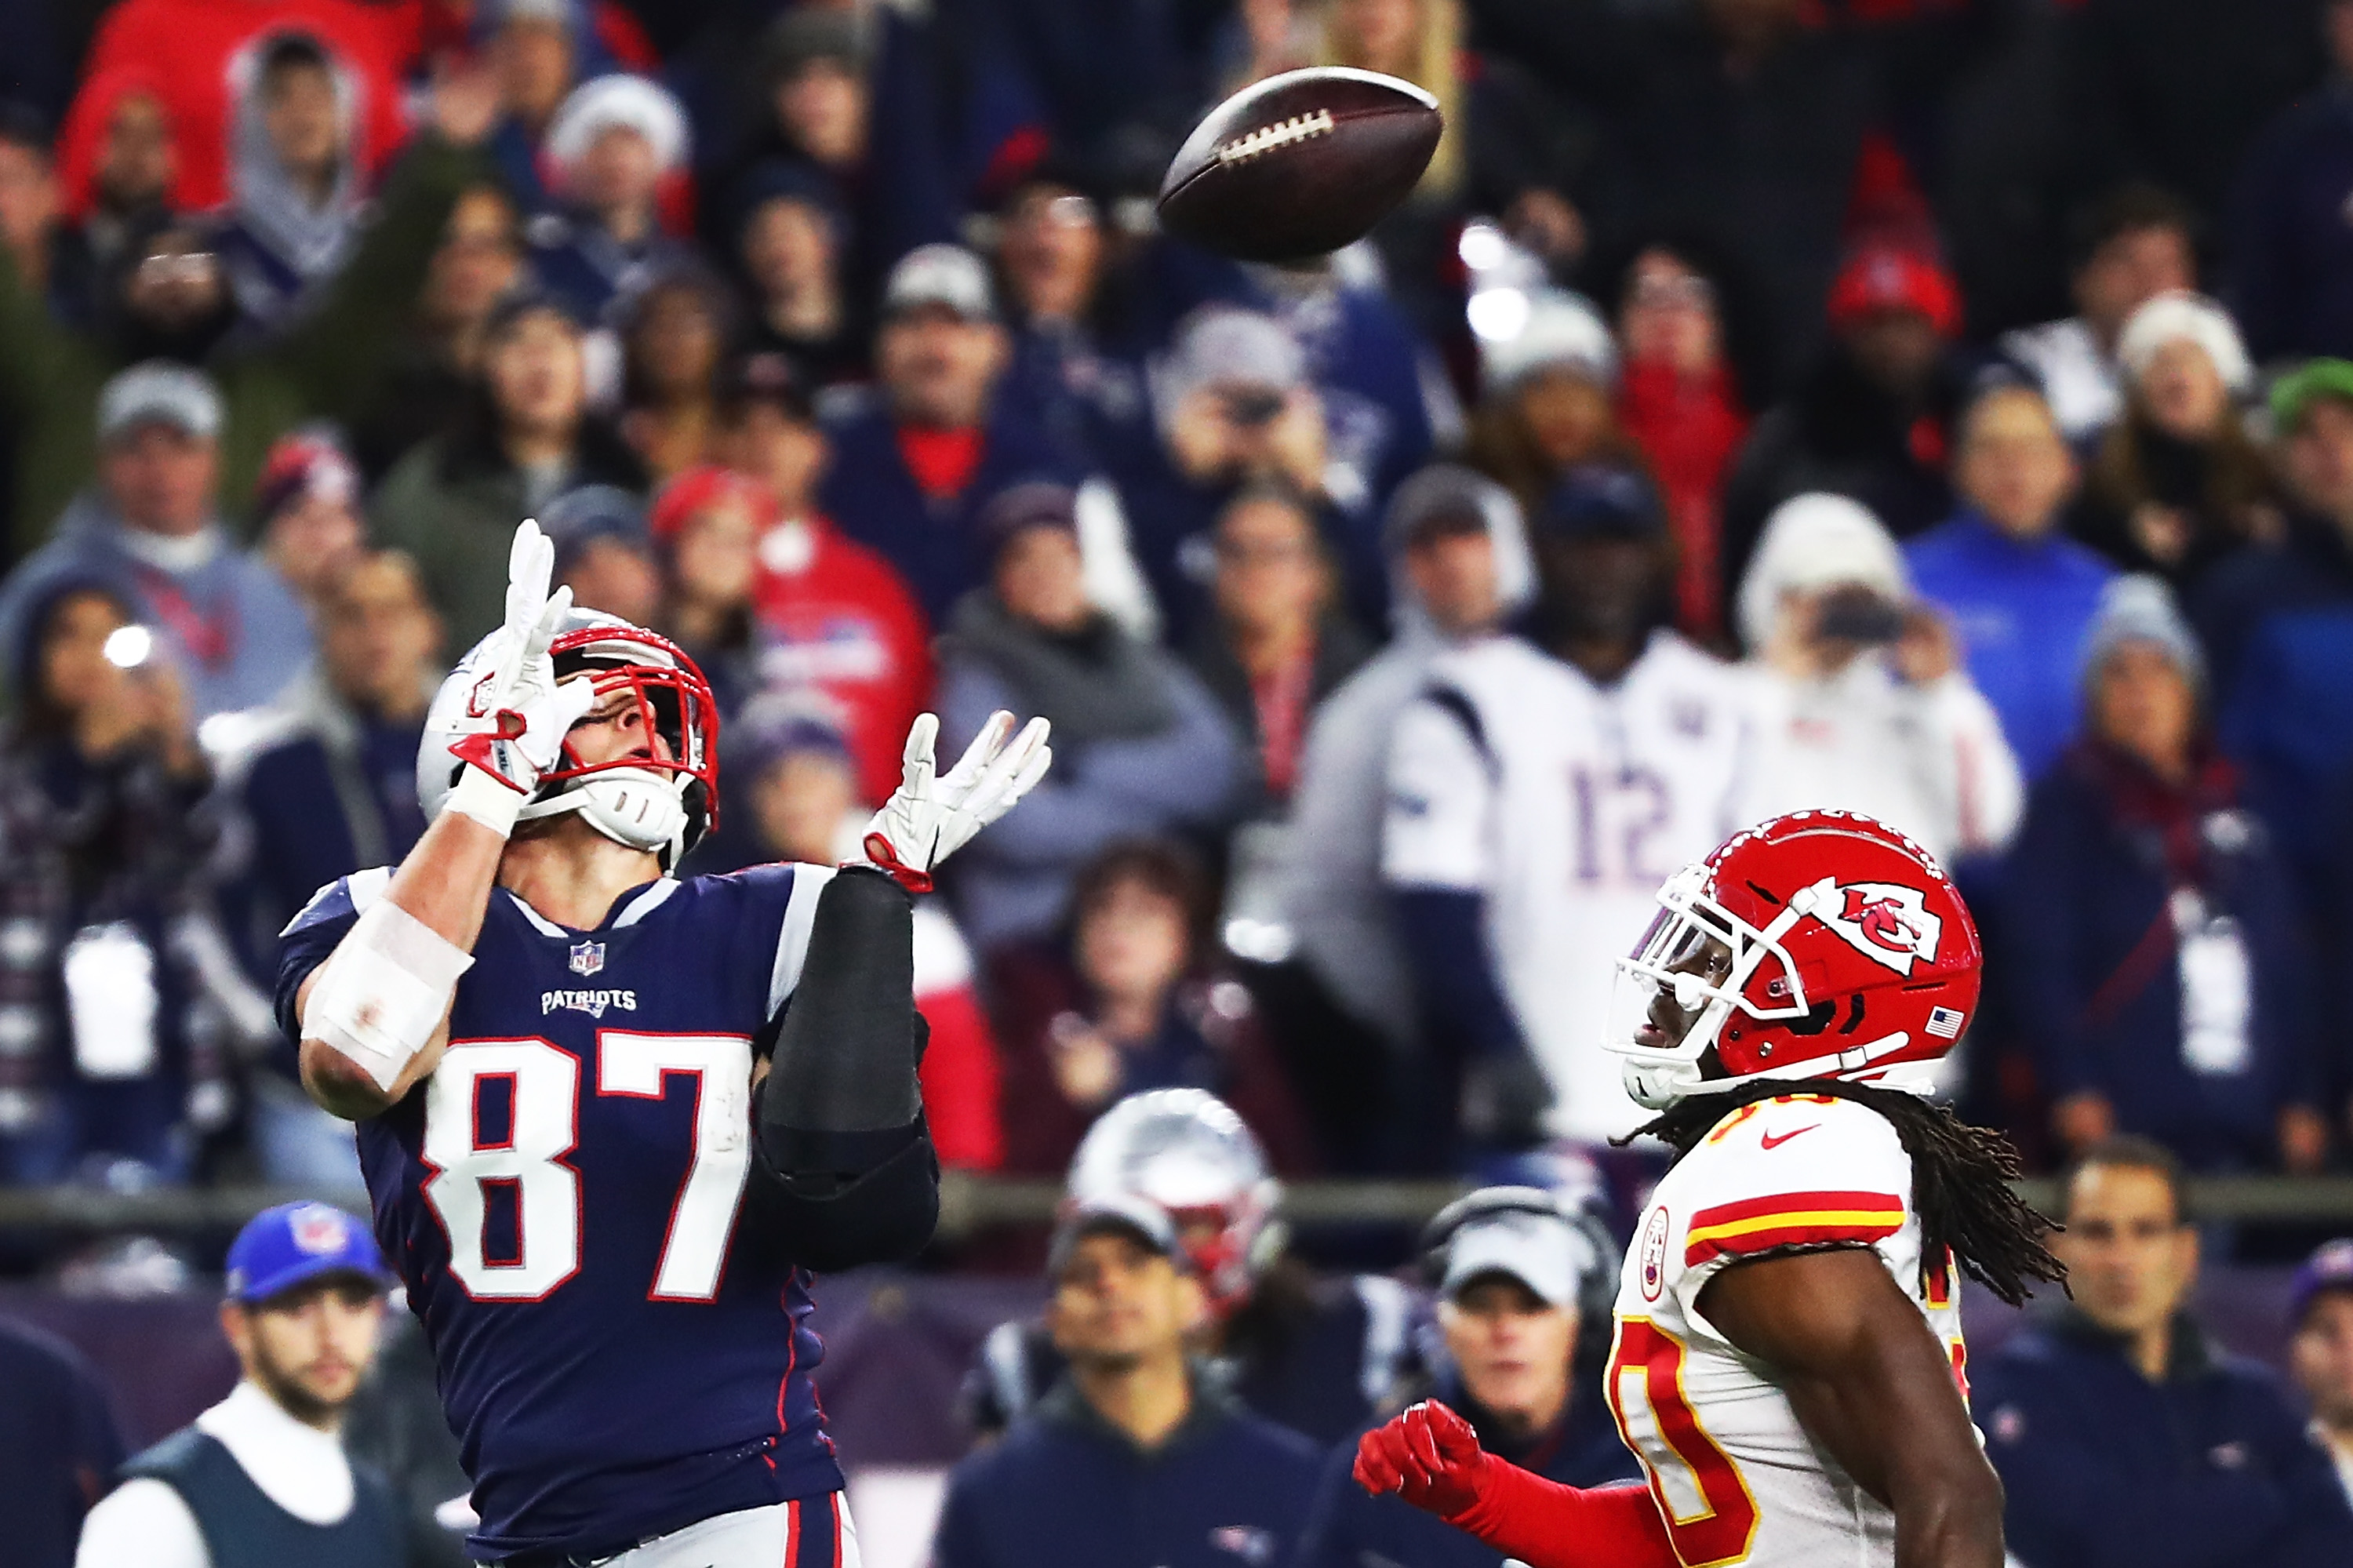 Rob Gronkowski #87 of the New England Patriots makes a catch while under pressure from Josh Shaw #30 of the Kansas City Chiefs in the fourth quarter of a game at Gillette Stadium on October 14, 2018 in Foxborough, Massachusetts.